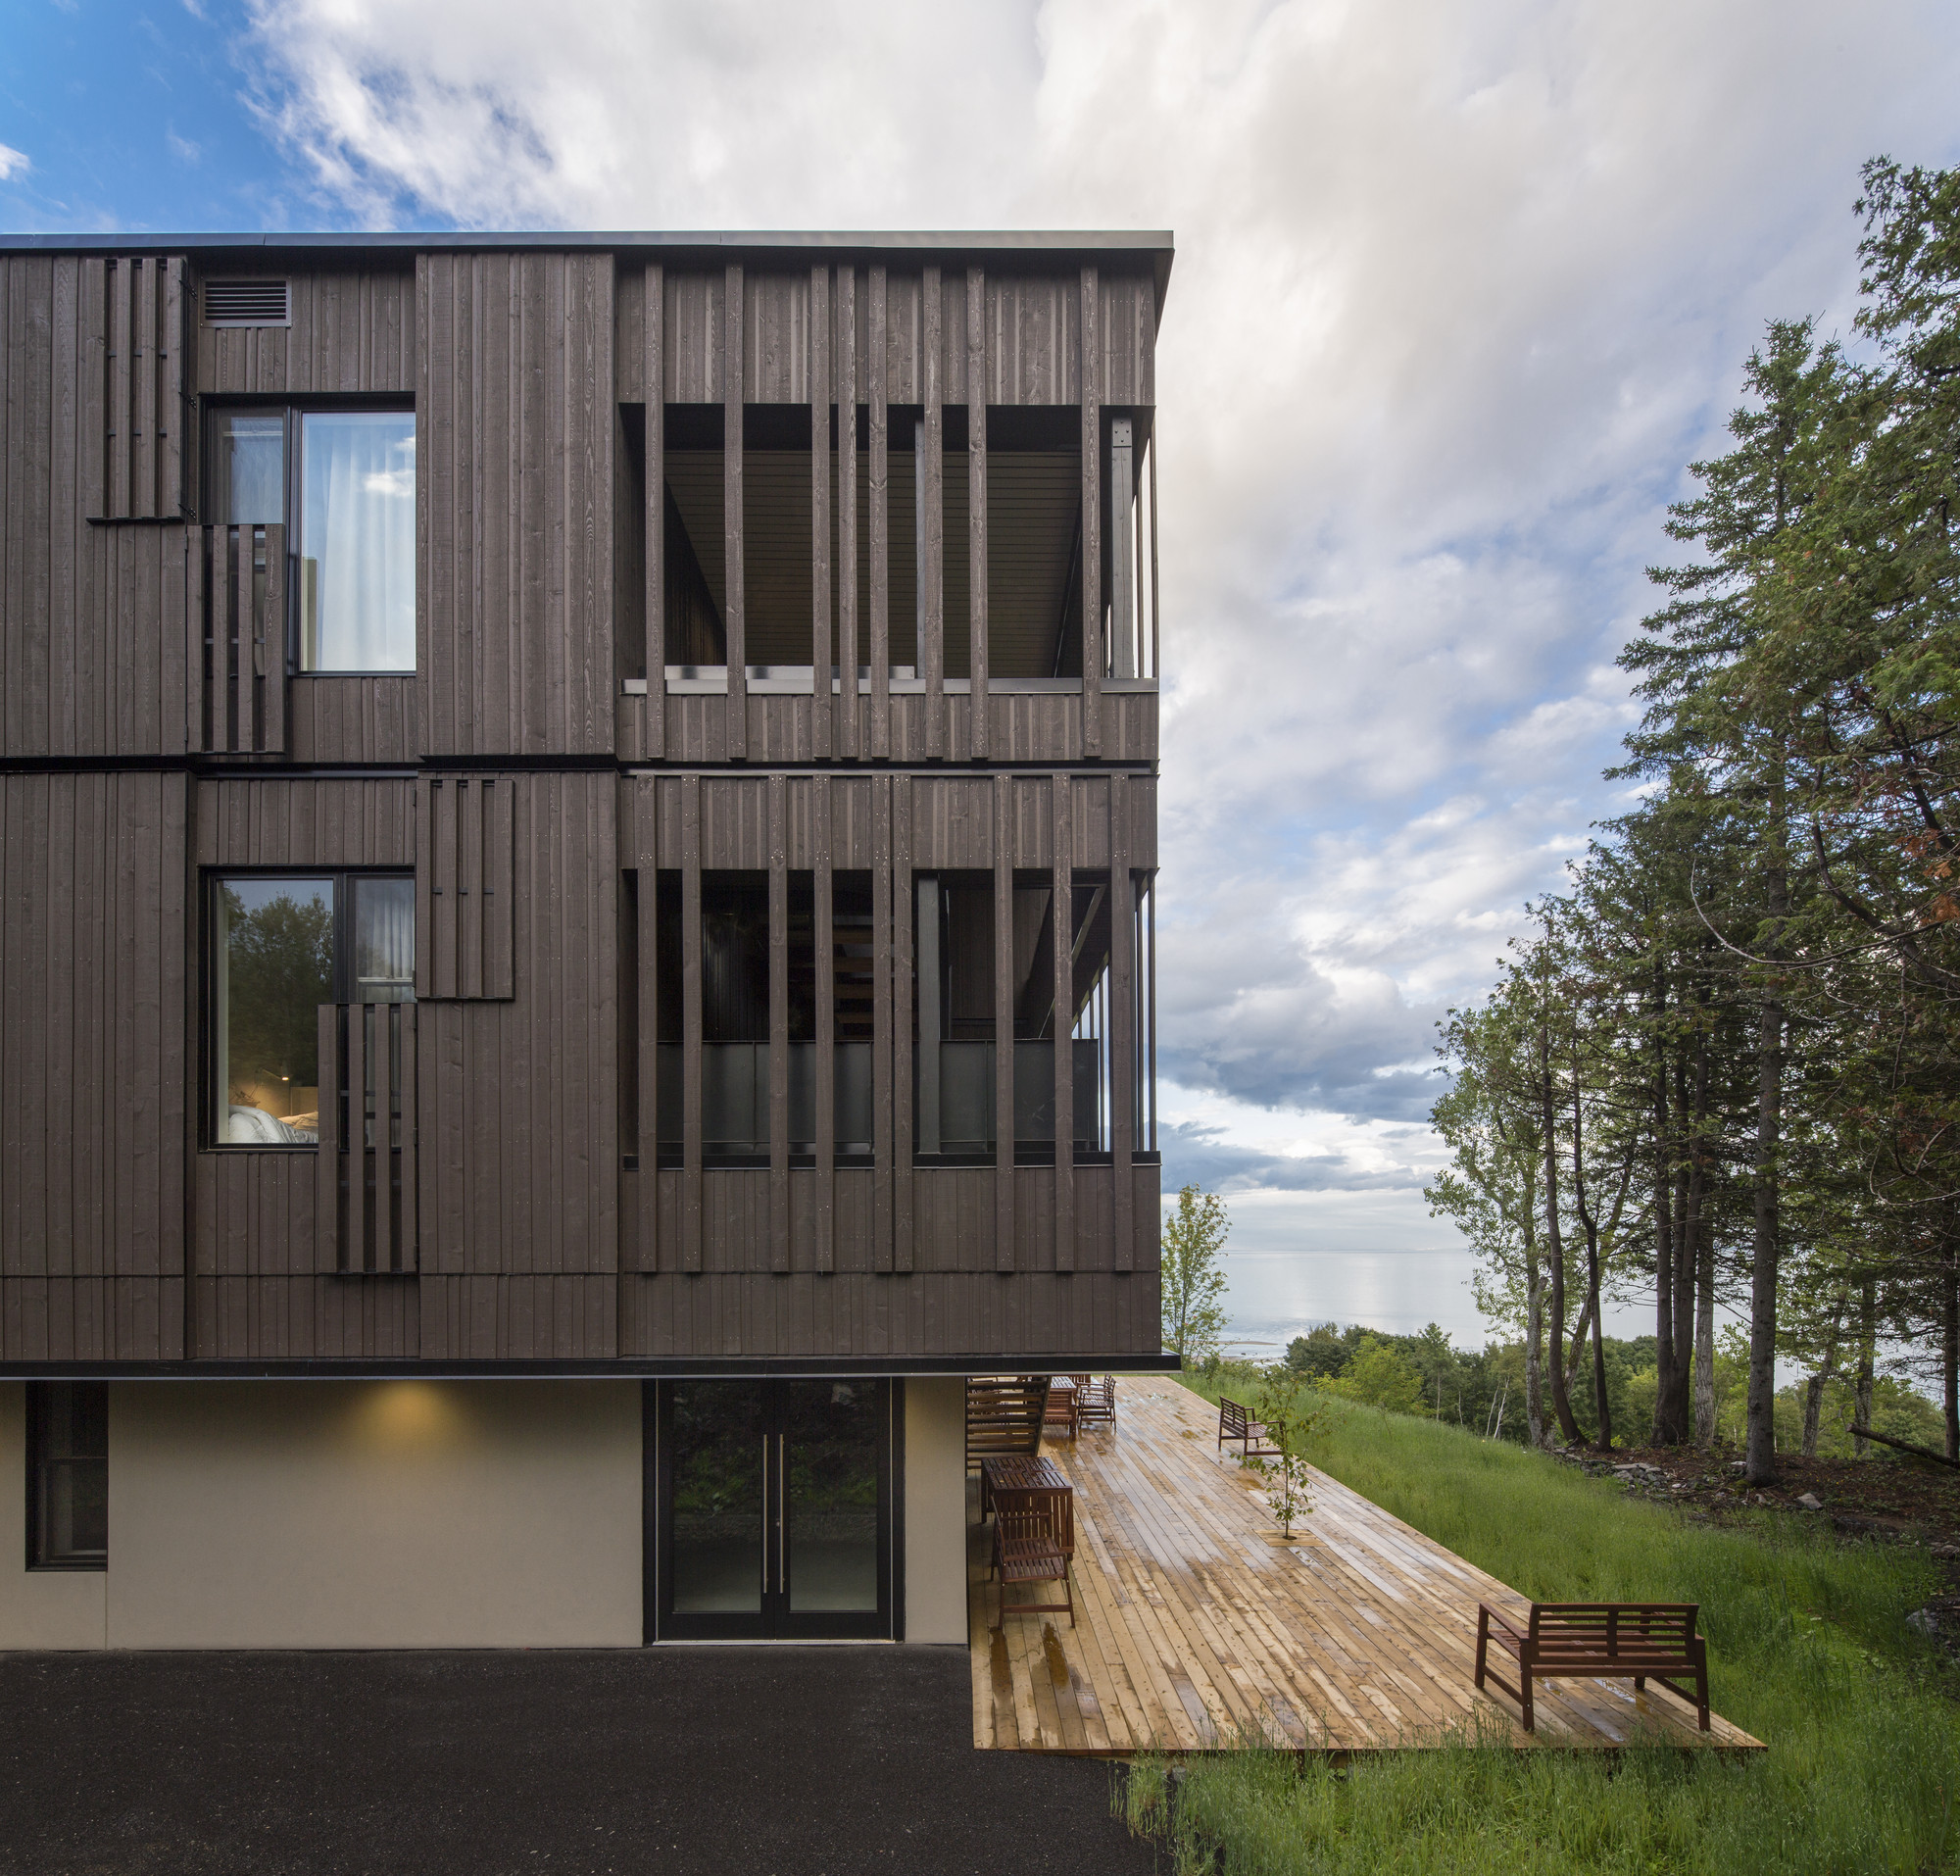 Student Residence Paul Lafleur / Bisson | Associés Architects, © Stephane Groleau